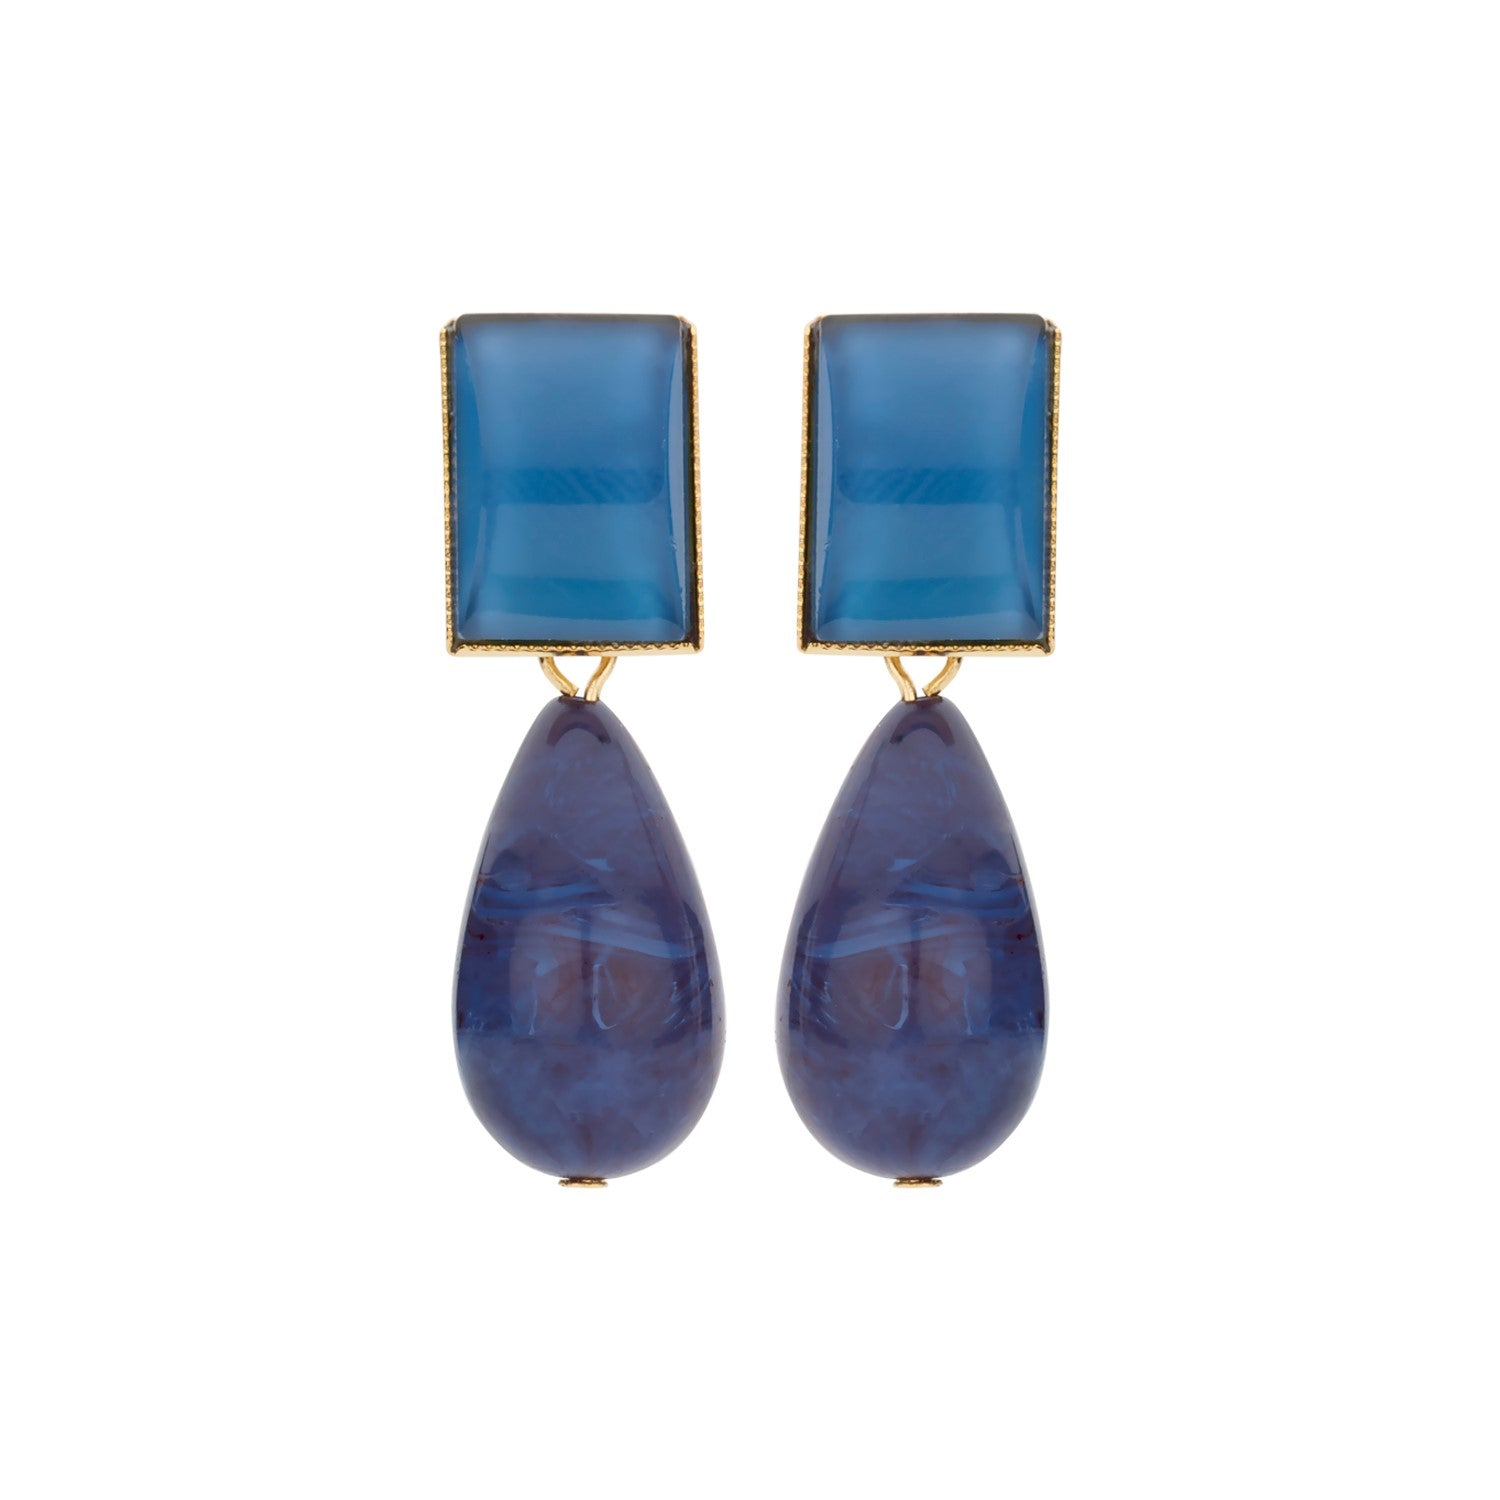 New Playa blue earrings - Souvenirs de Pomme